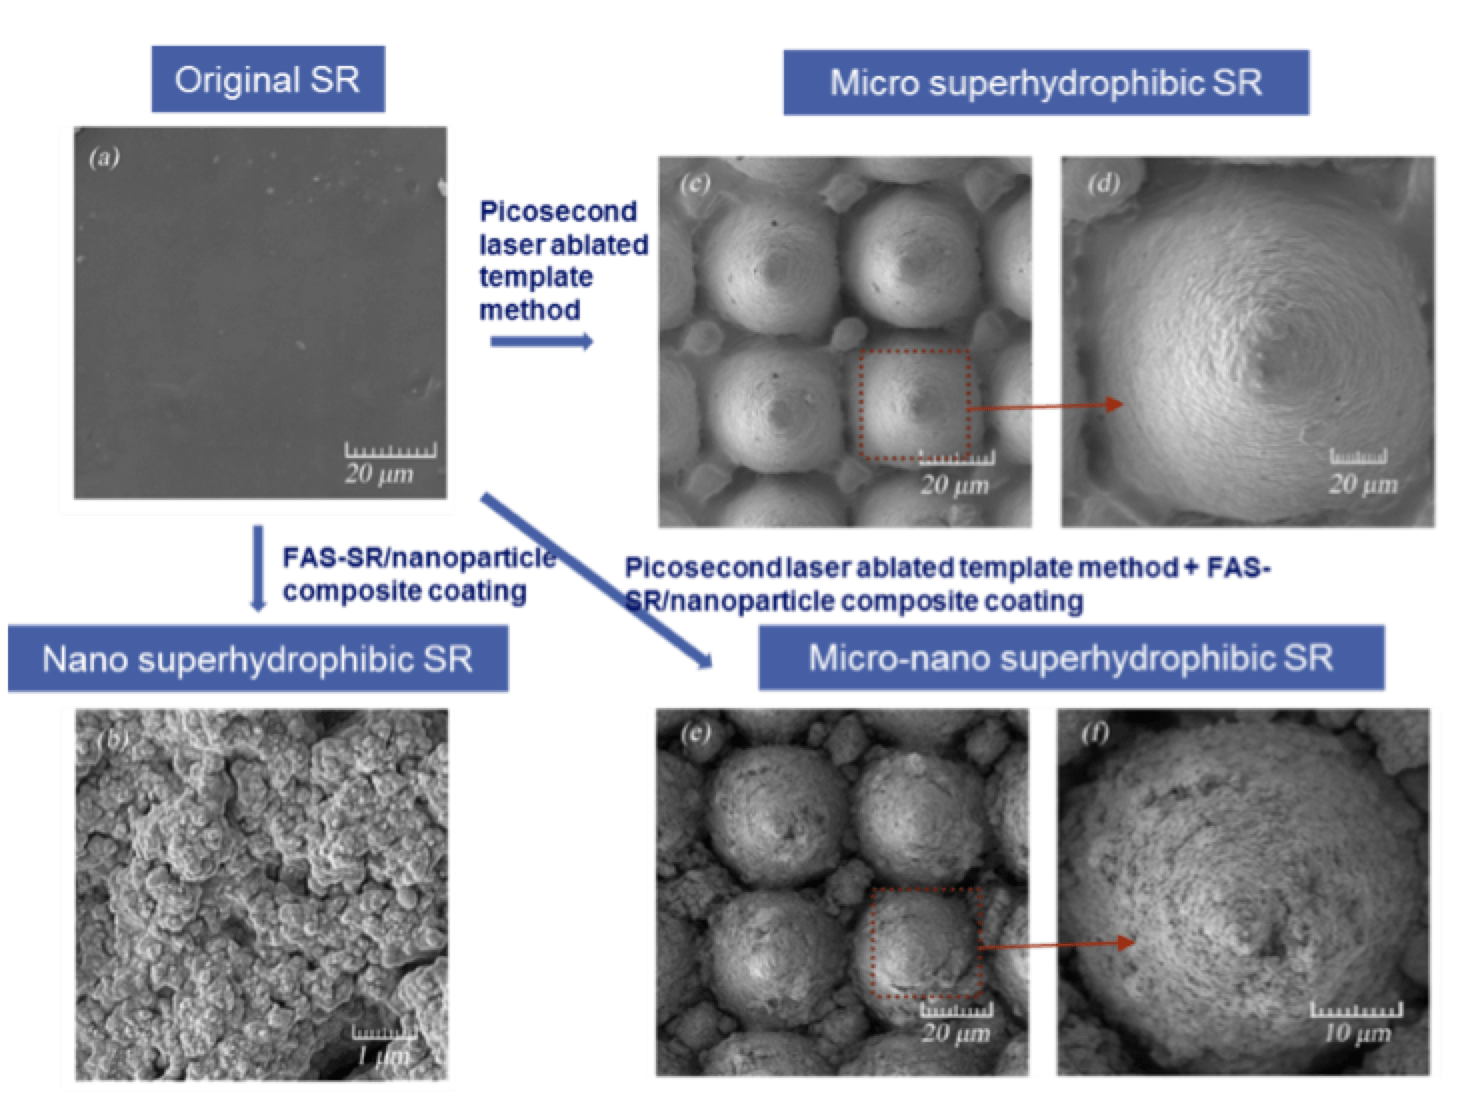 Fig. 11: Scanning electron microscope (SEM) of original & super-hydrophobic HTV silicone rubber specimens. (a) original HTV silicone rubber surface, top left; (b) nano-structure HTV silicone rubber surface, bottom left; (c, d) micro-structure HTV silicone rubber surface, top right; (e, f) micro-nano-structure HTV silicone rubber surface, bottom right. [object object] Key Issues for Future of Composite Insulators Screen Shot 2018 09 28 at 15